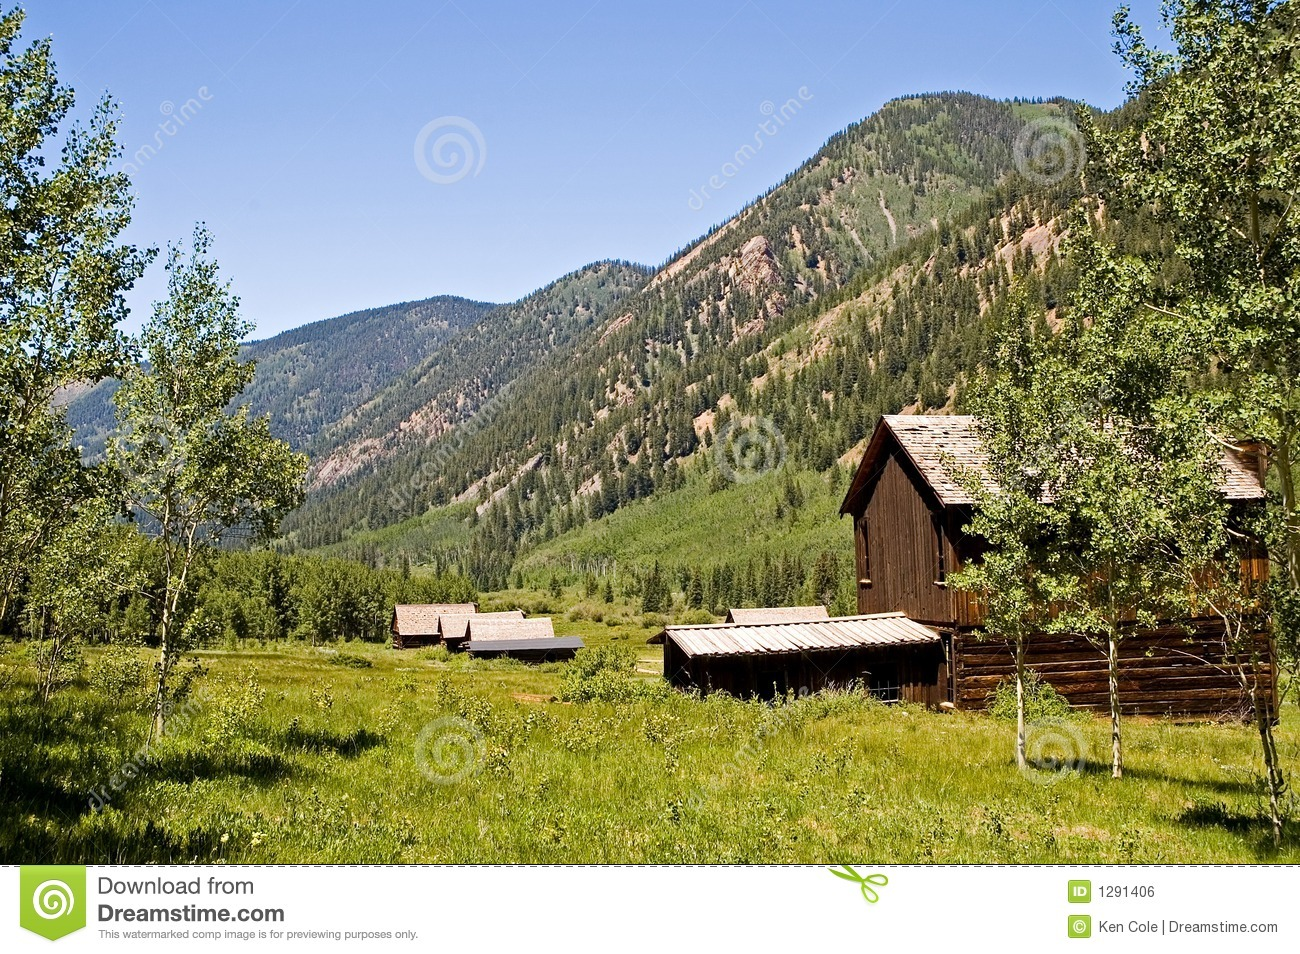 Colorado Ghost Town Royalty Free Stock Image - Image: 1291406